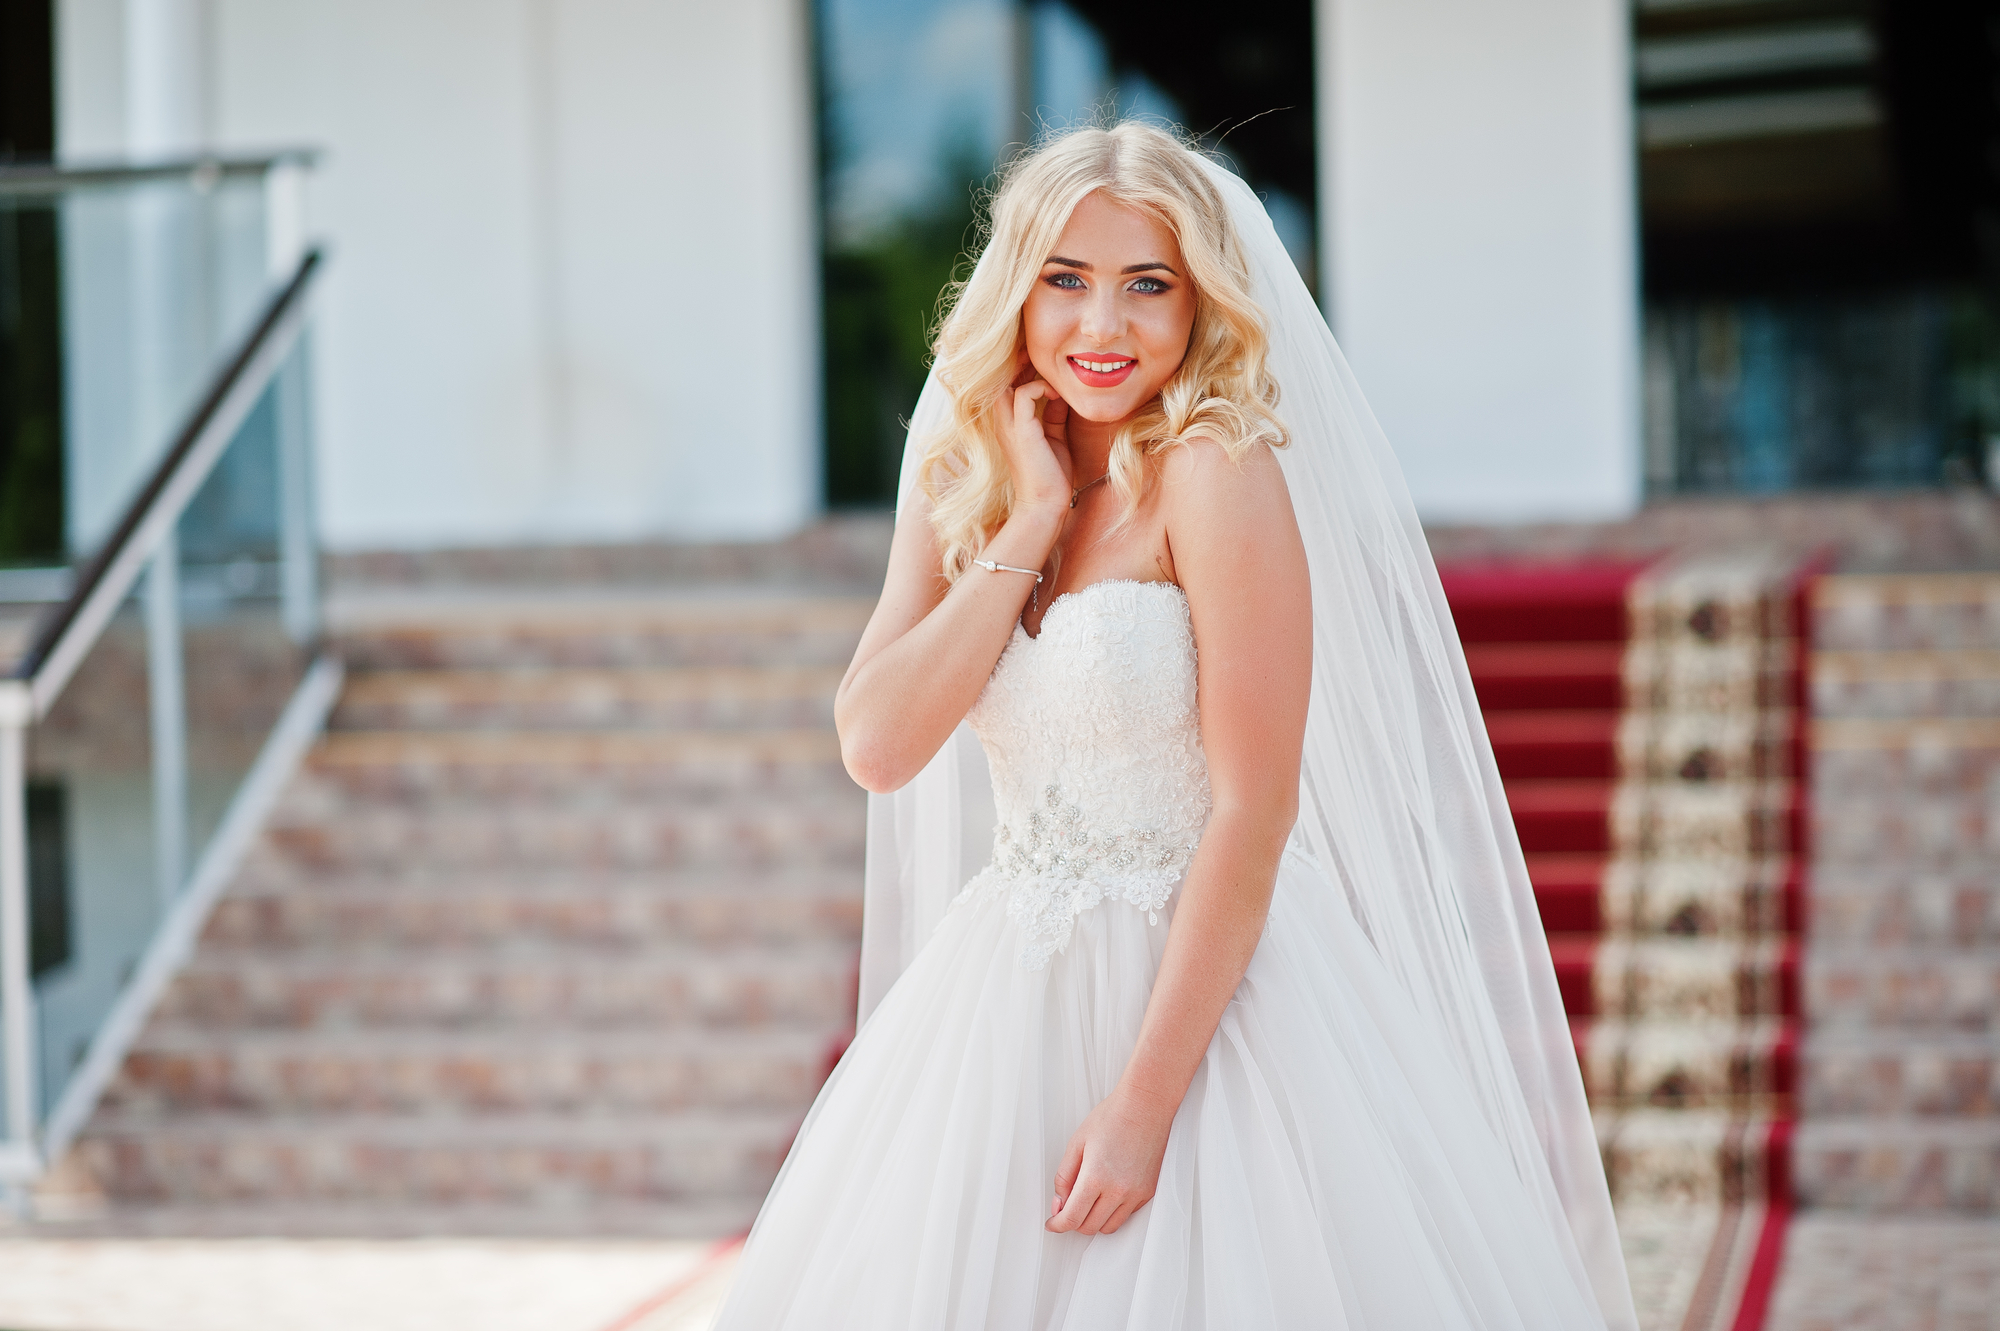 What to Know About Wedding Dress Shopping Etiquette